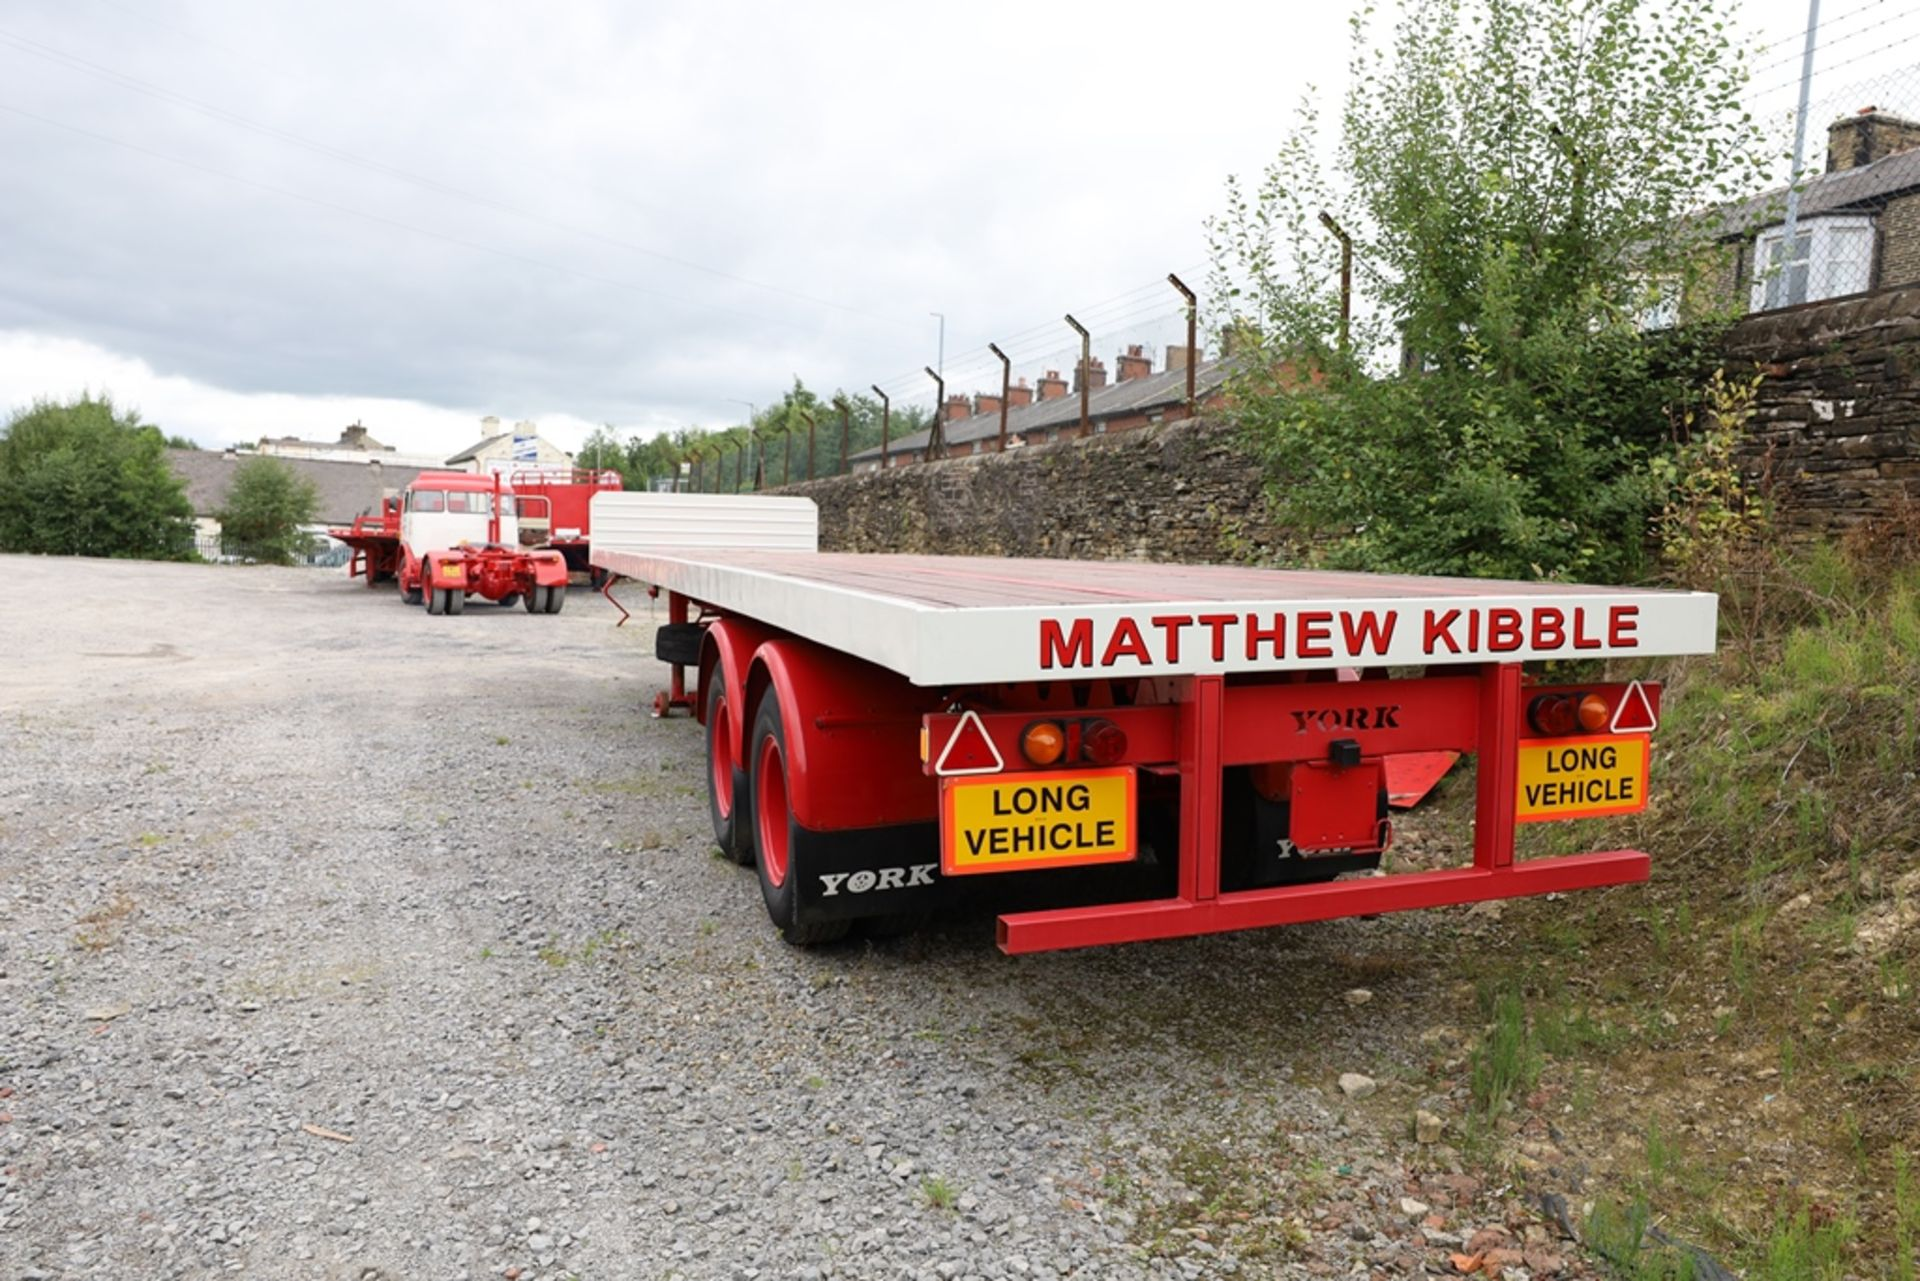 York SL 36 W/S 36ft Tandem Axle Timber Board Flat Semi Trailer, year of manufacture 1971, vendors - Image 2 of 8